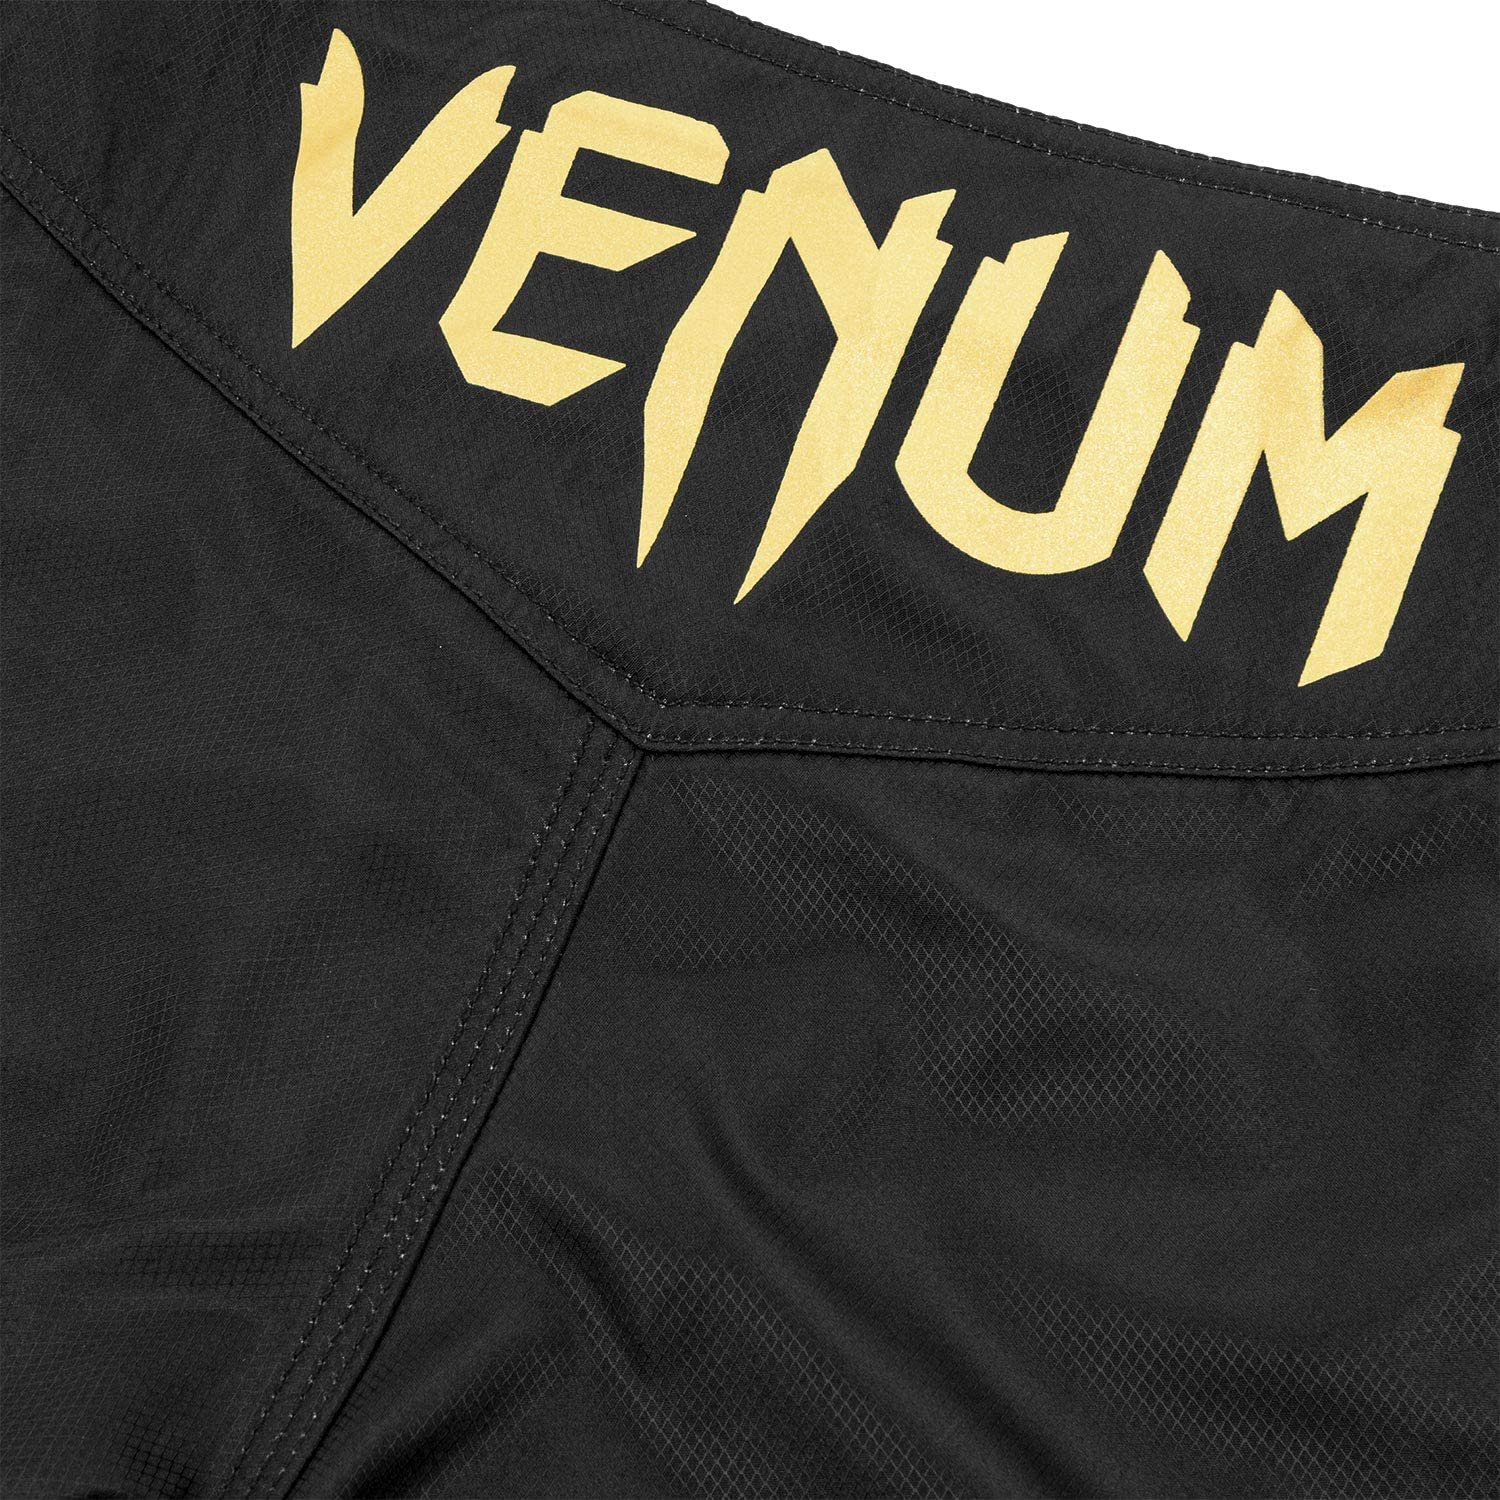 Gold//Black XL Venum Light 3.0 Fightshorts